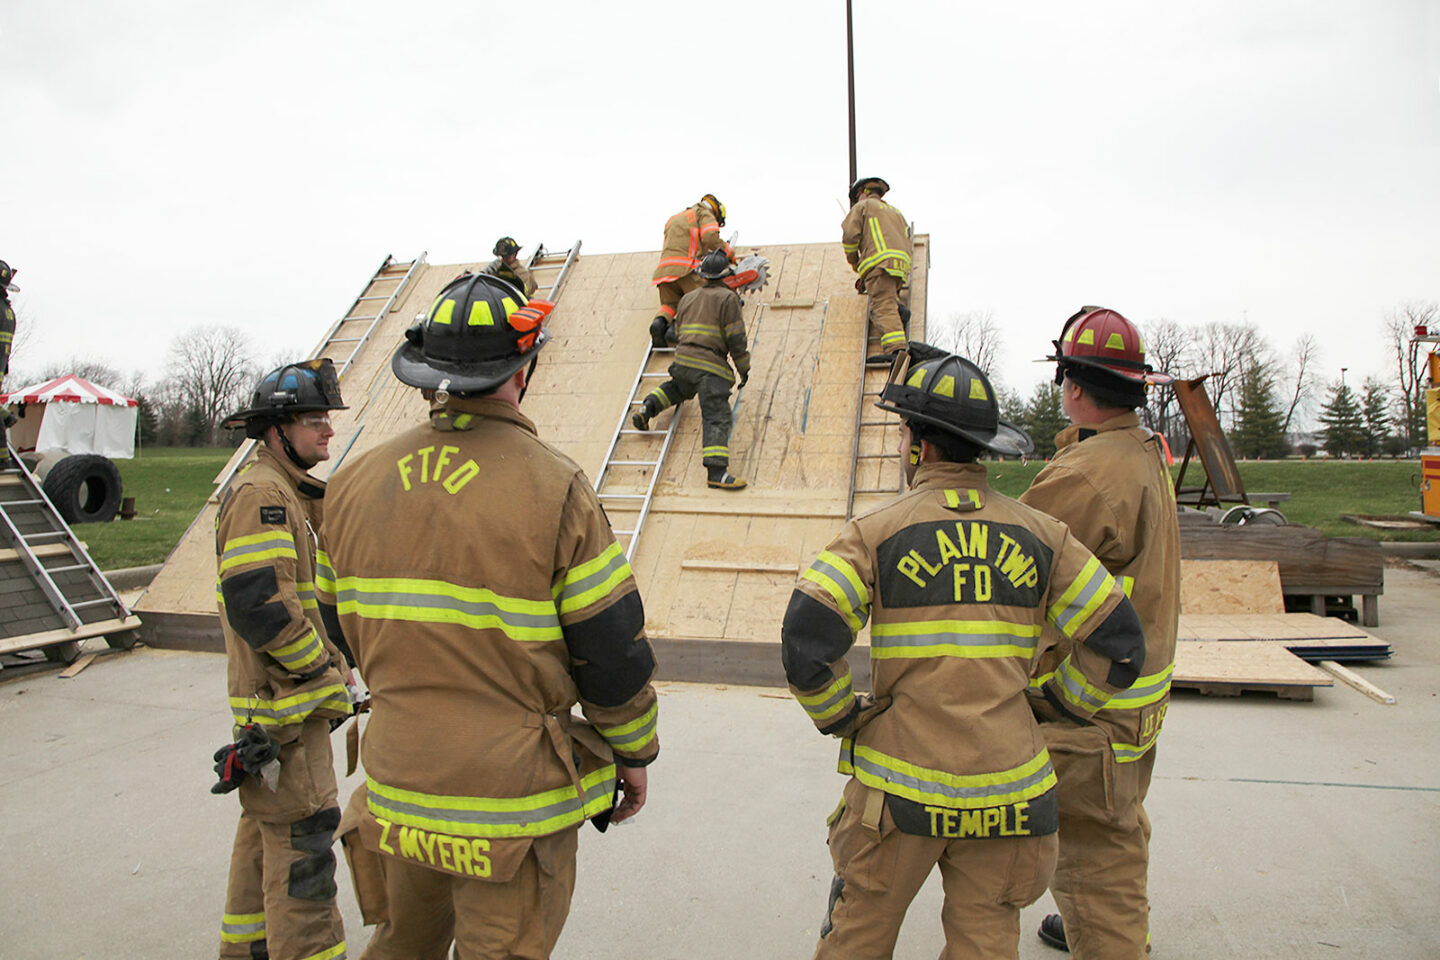 Firefighters with power saws training vertical ventilation on roof props